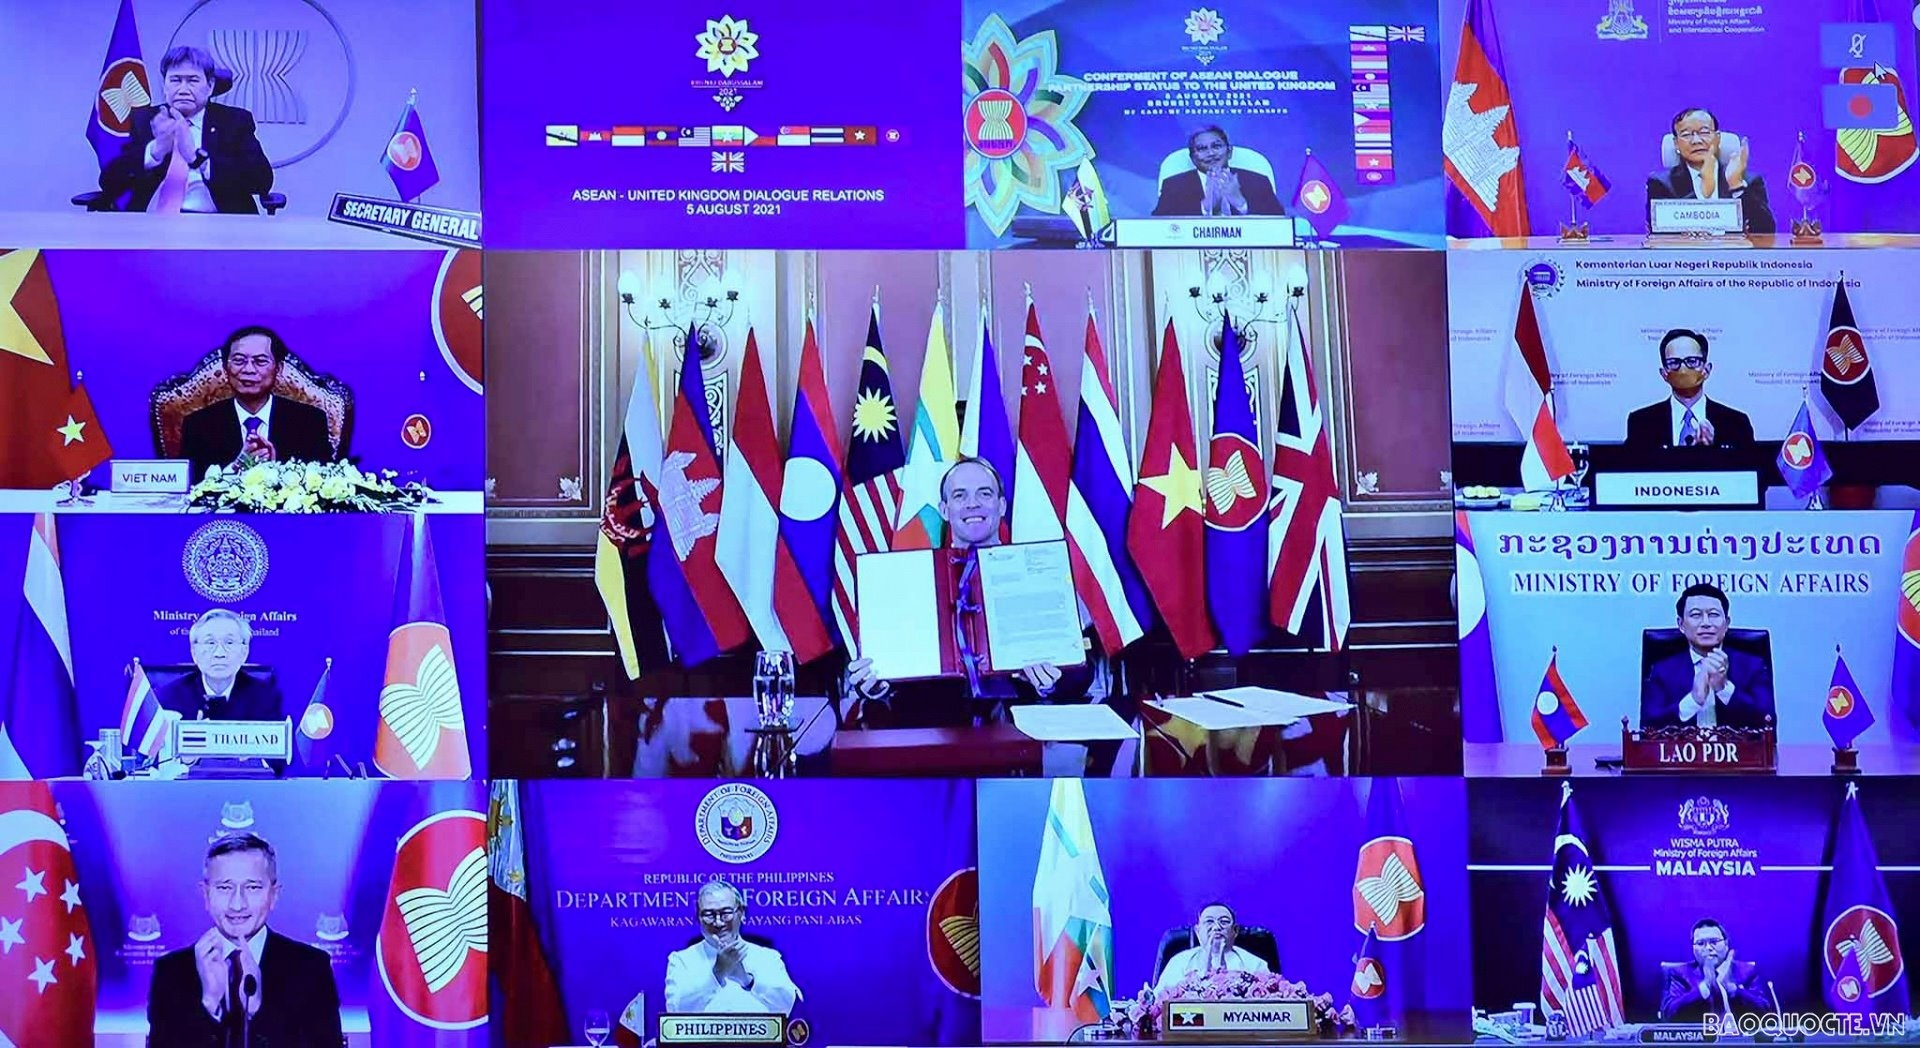 UK Becomes 11th Dialogue Partner of ASEAN